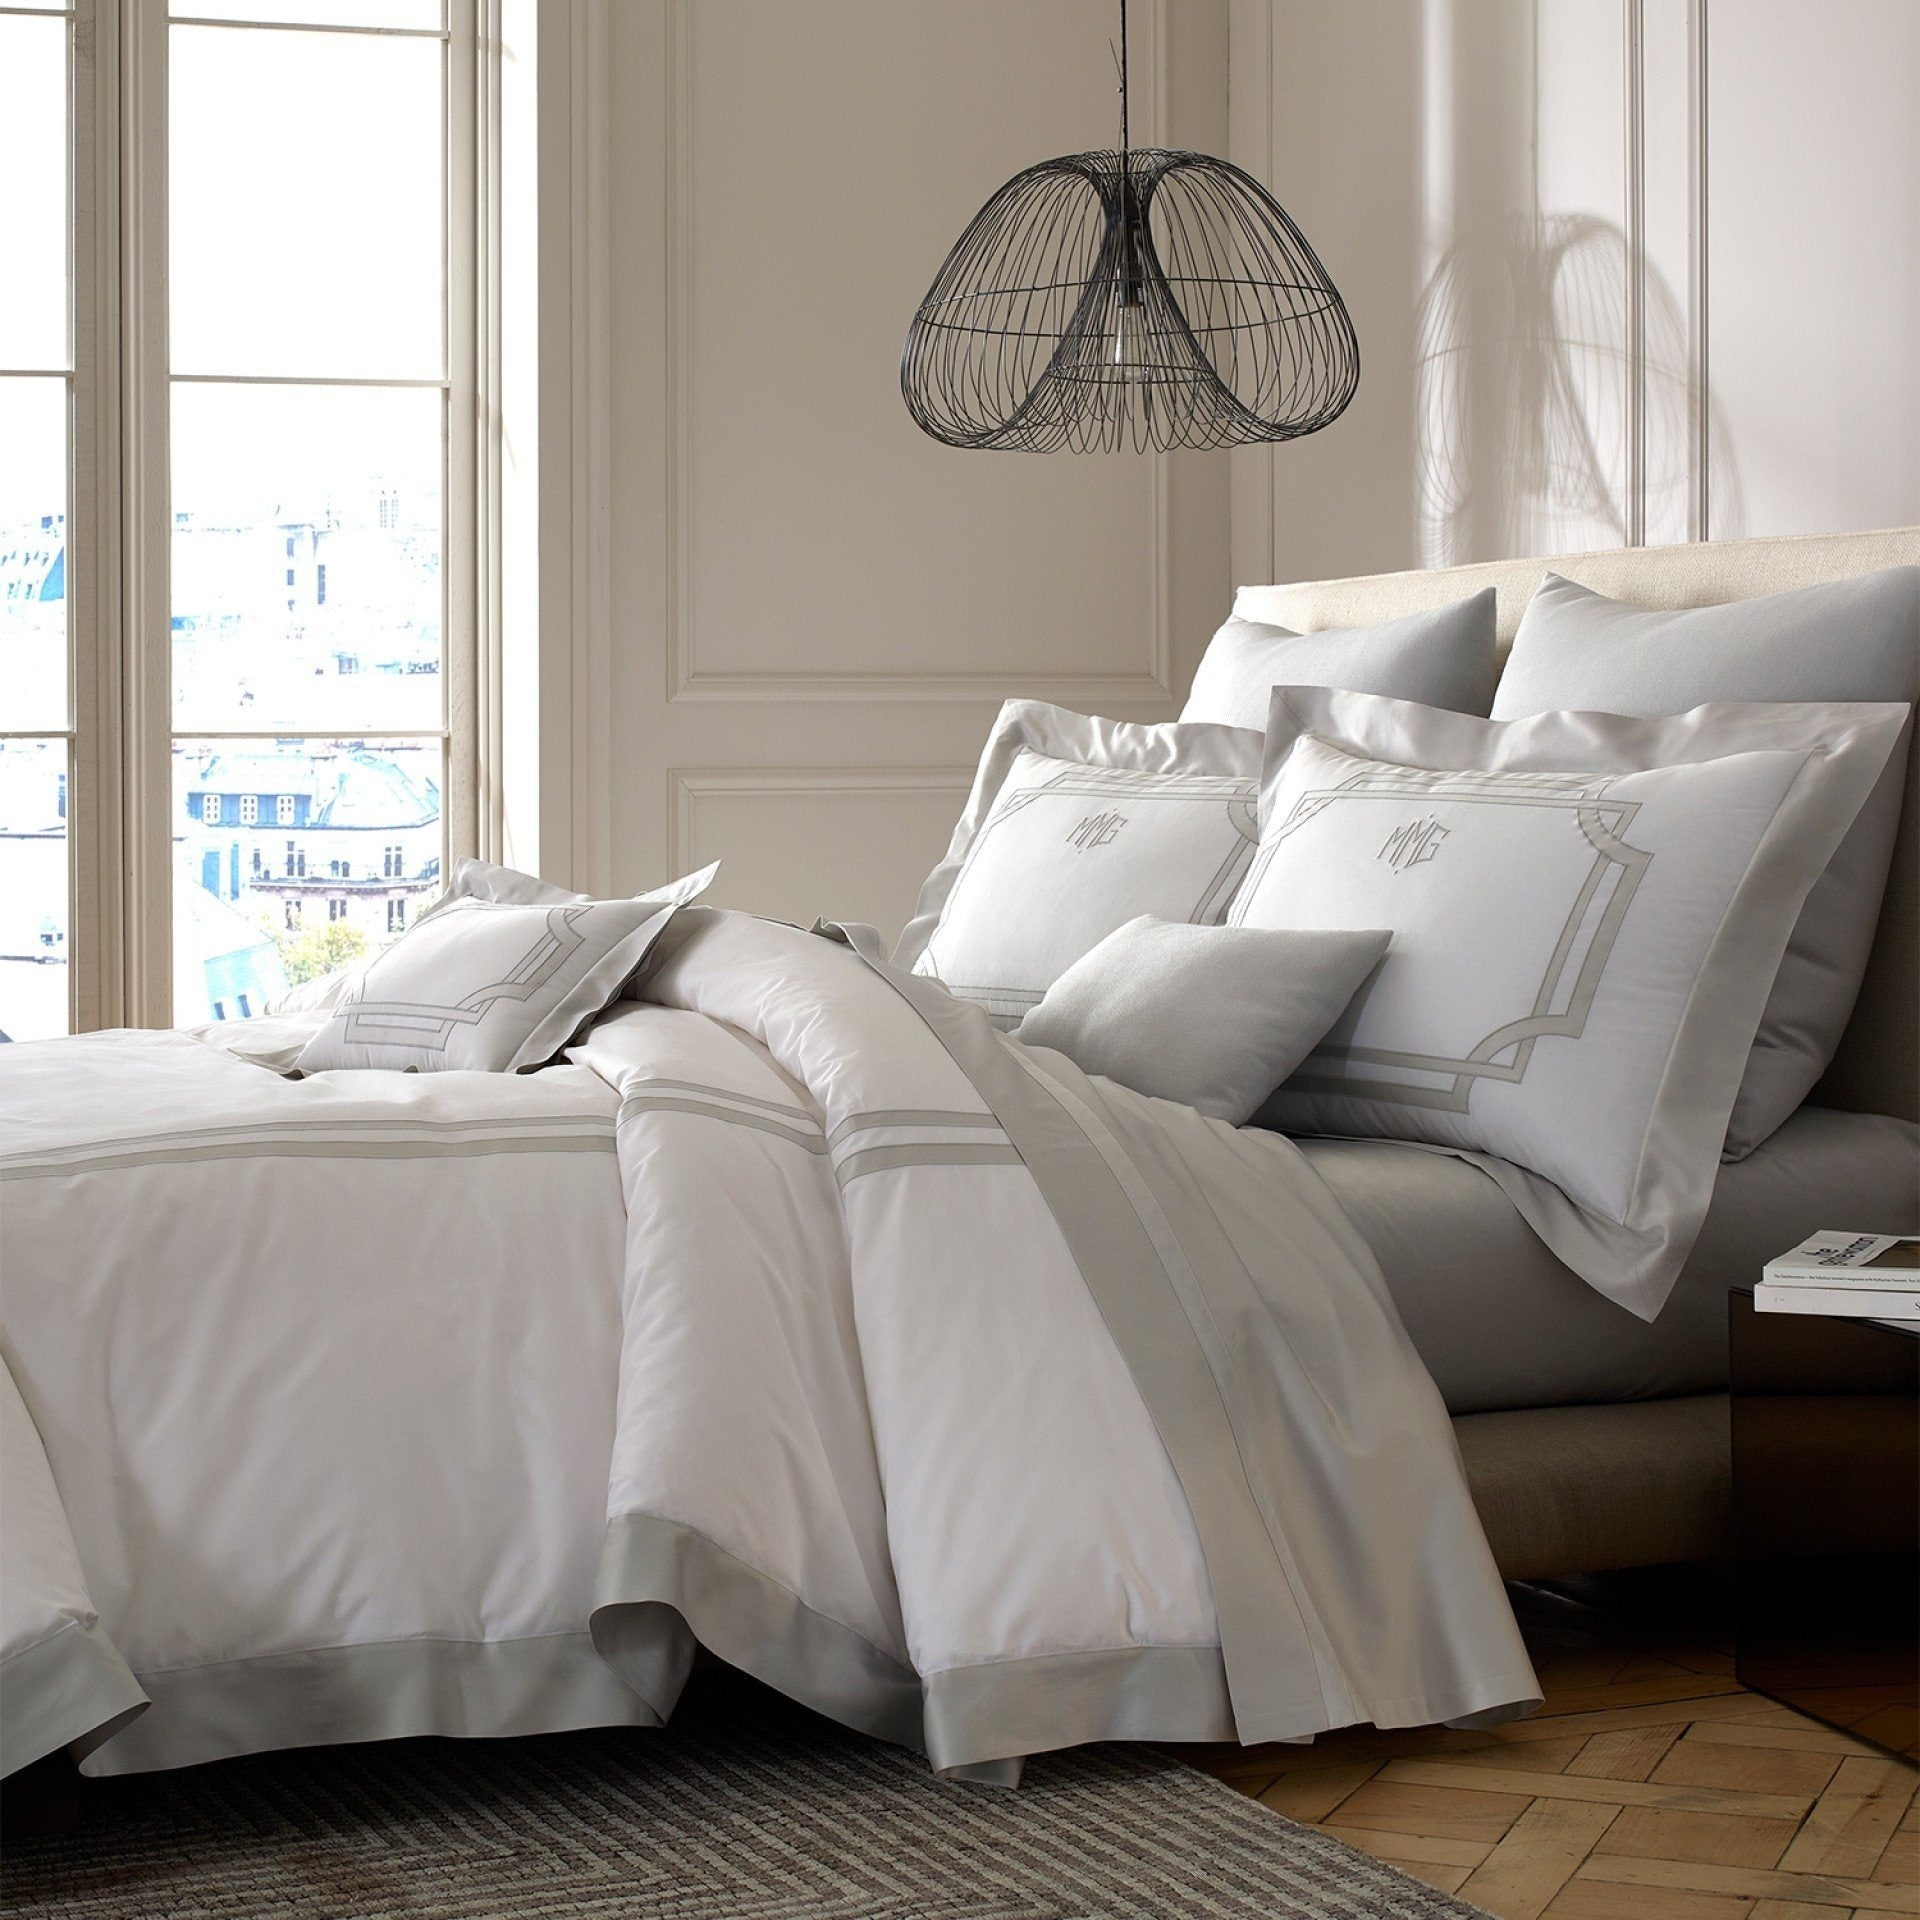 Matouk Bedding | Salon Duvets & Shams at Fig Linens